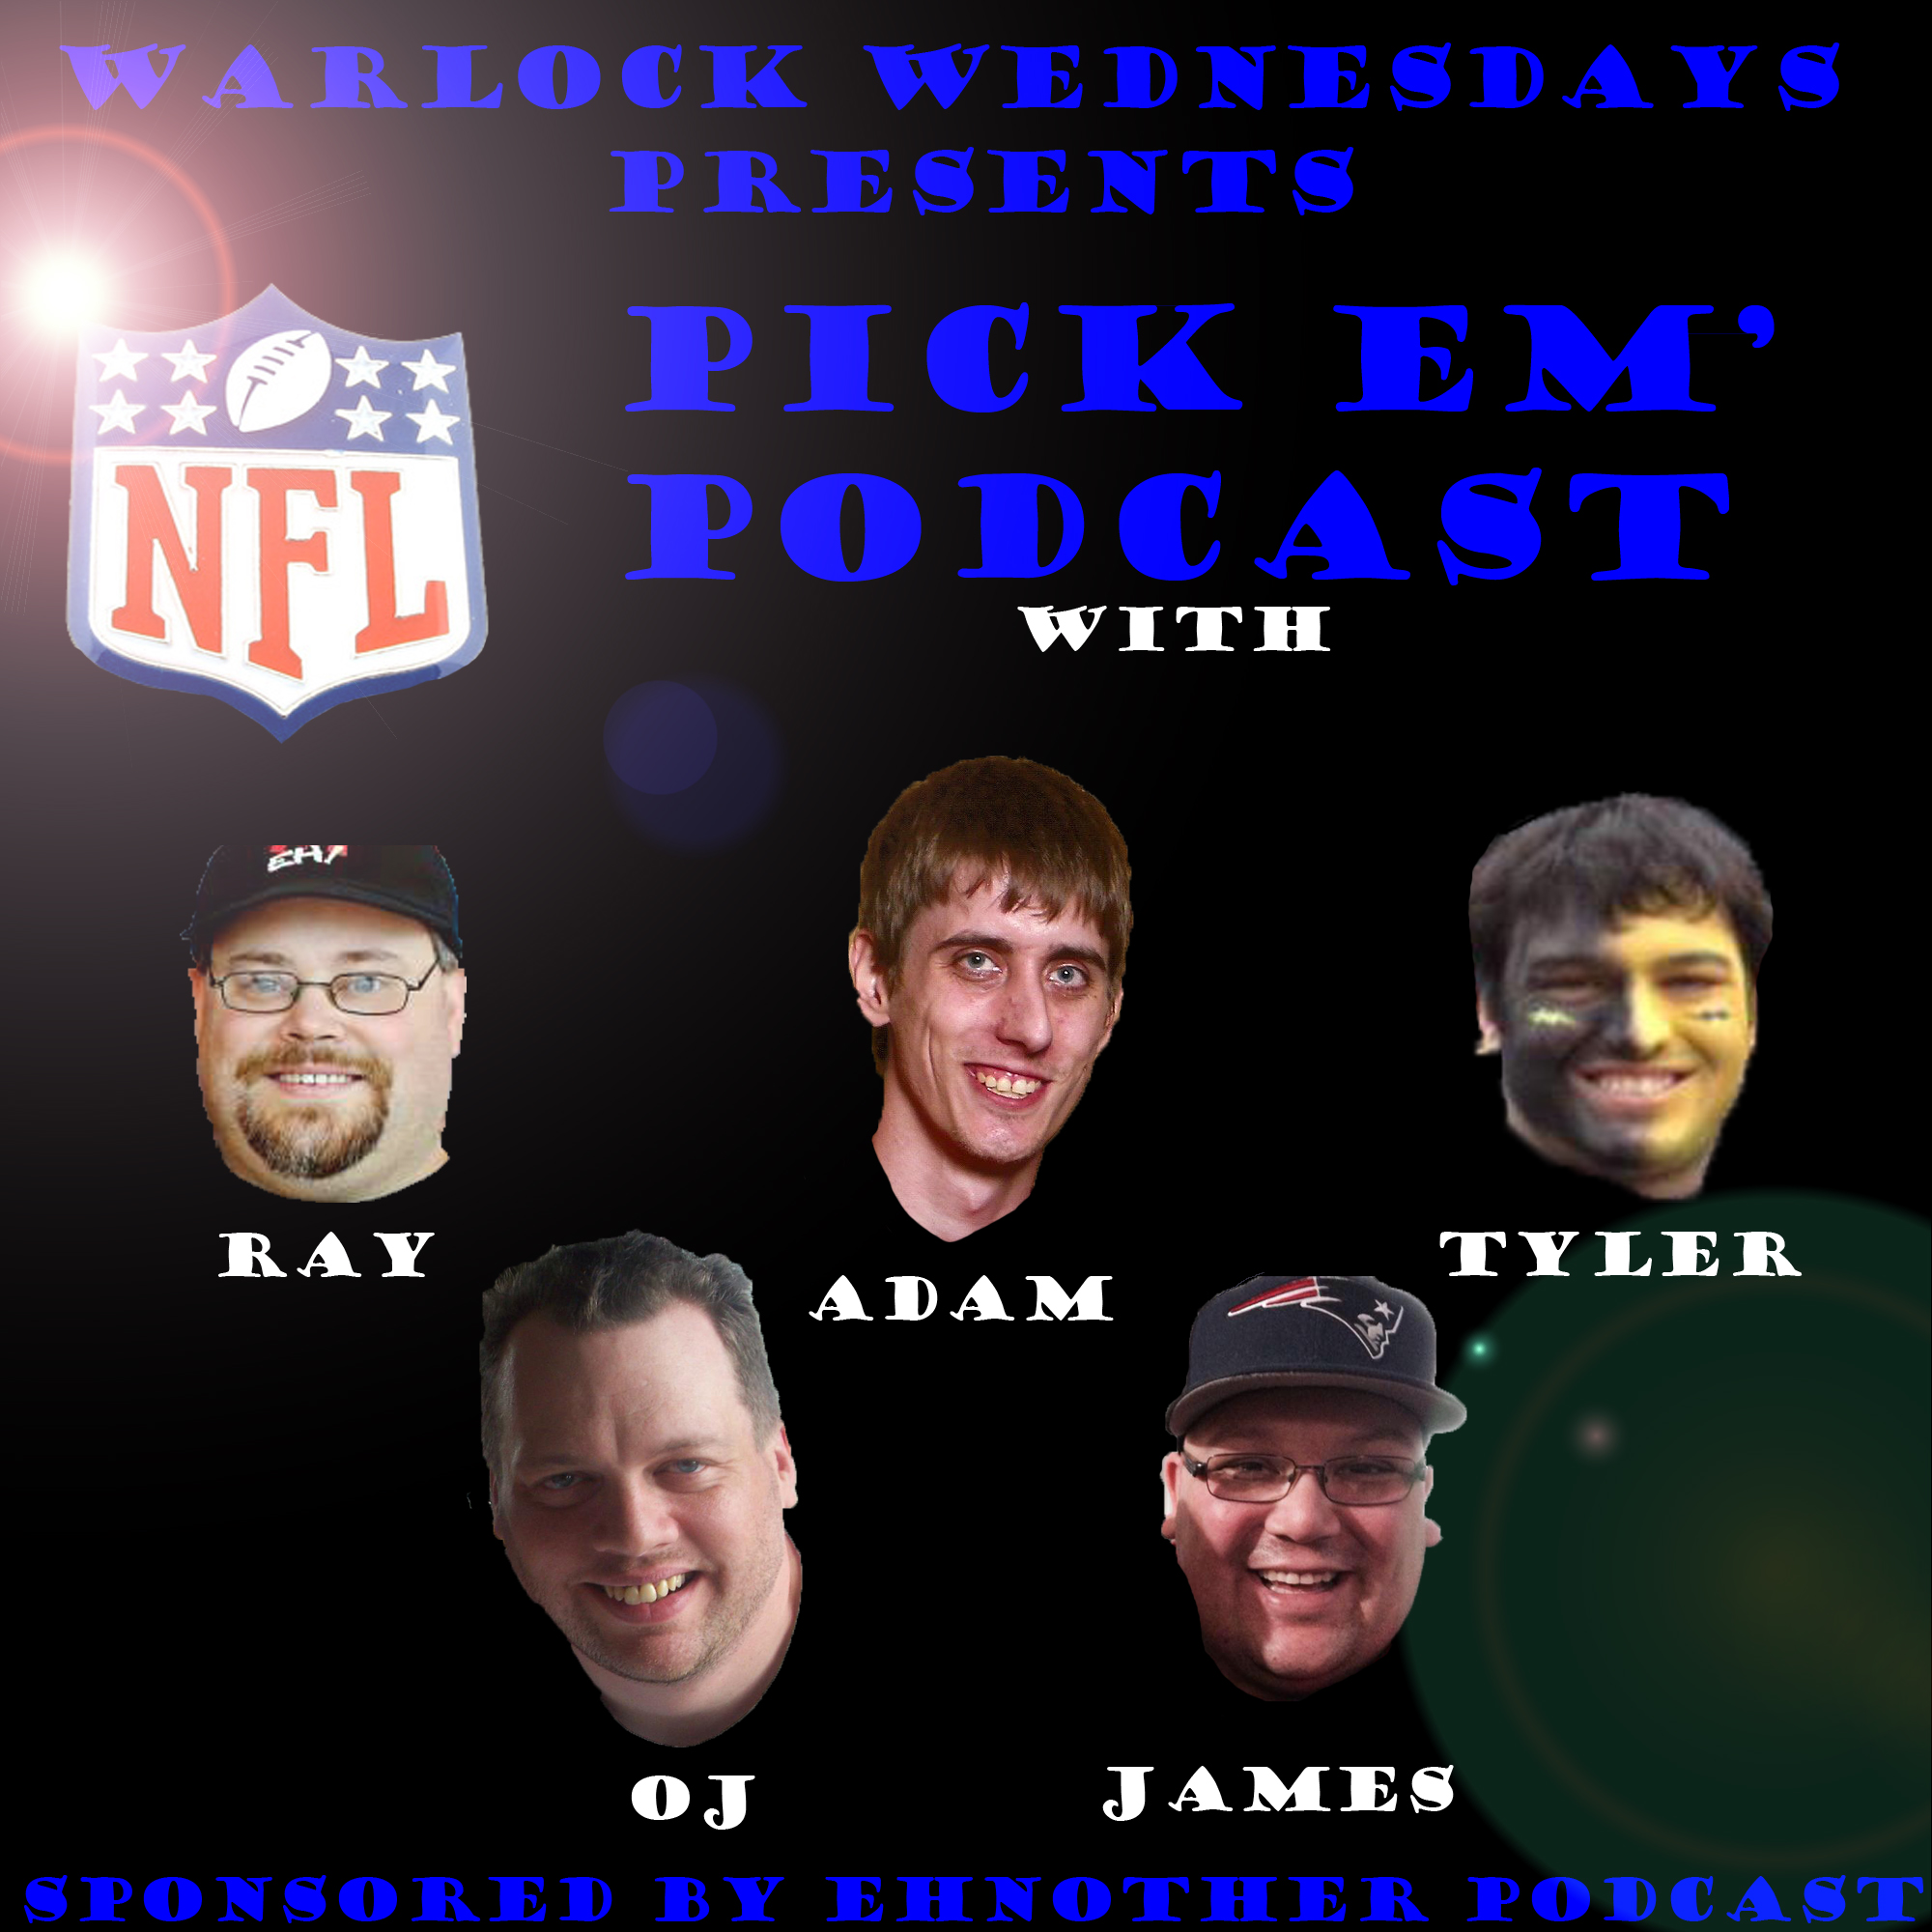 NFL Pick 'Em – The Ehnother Podcast Network